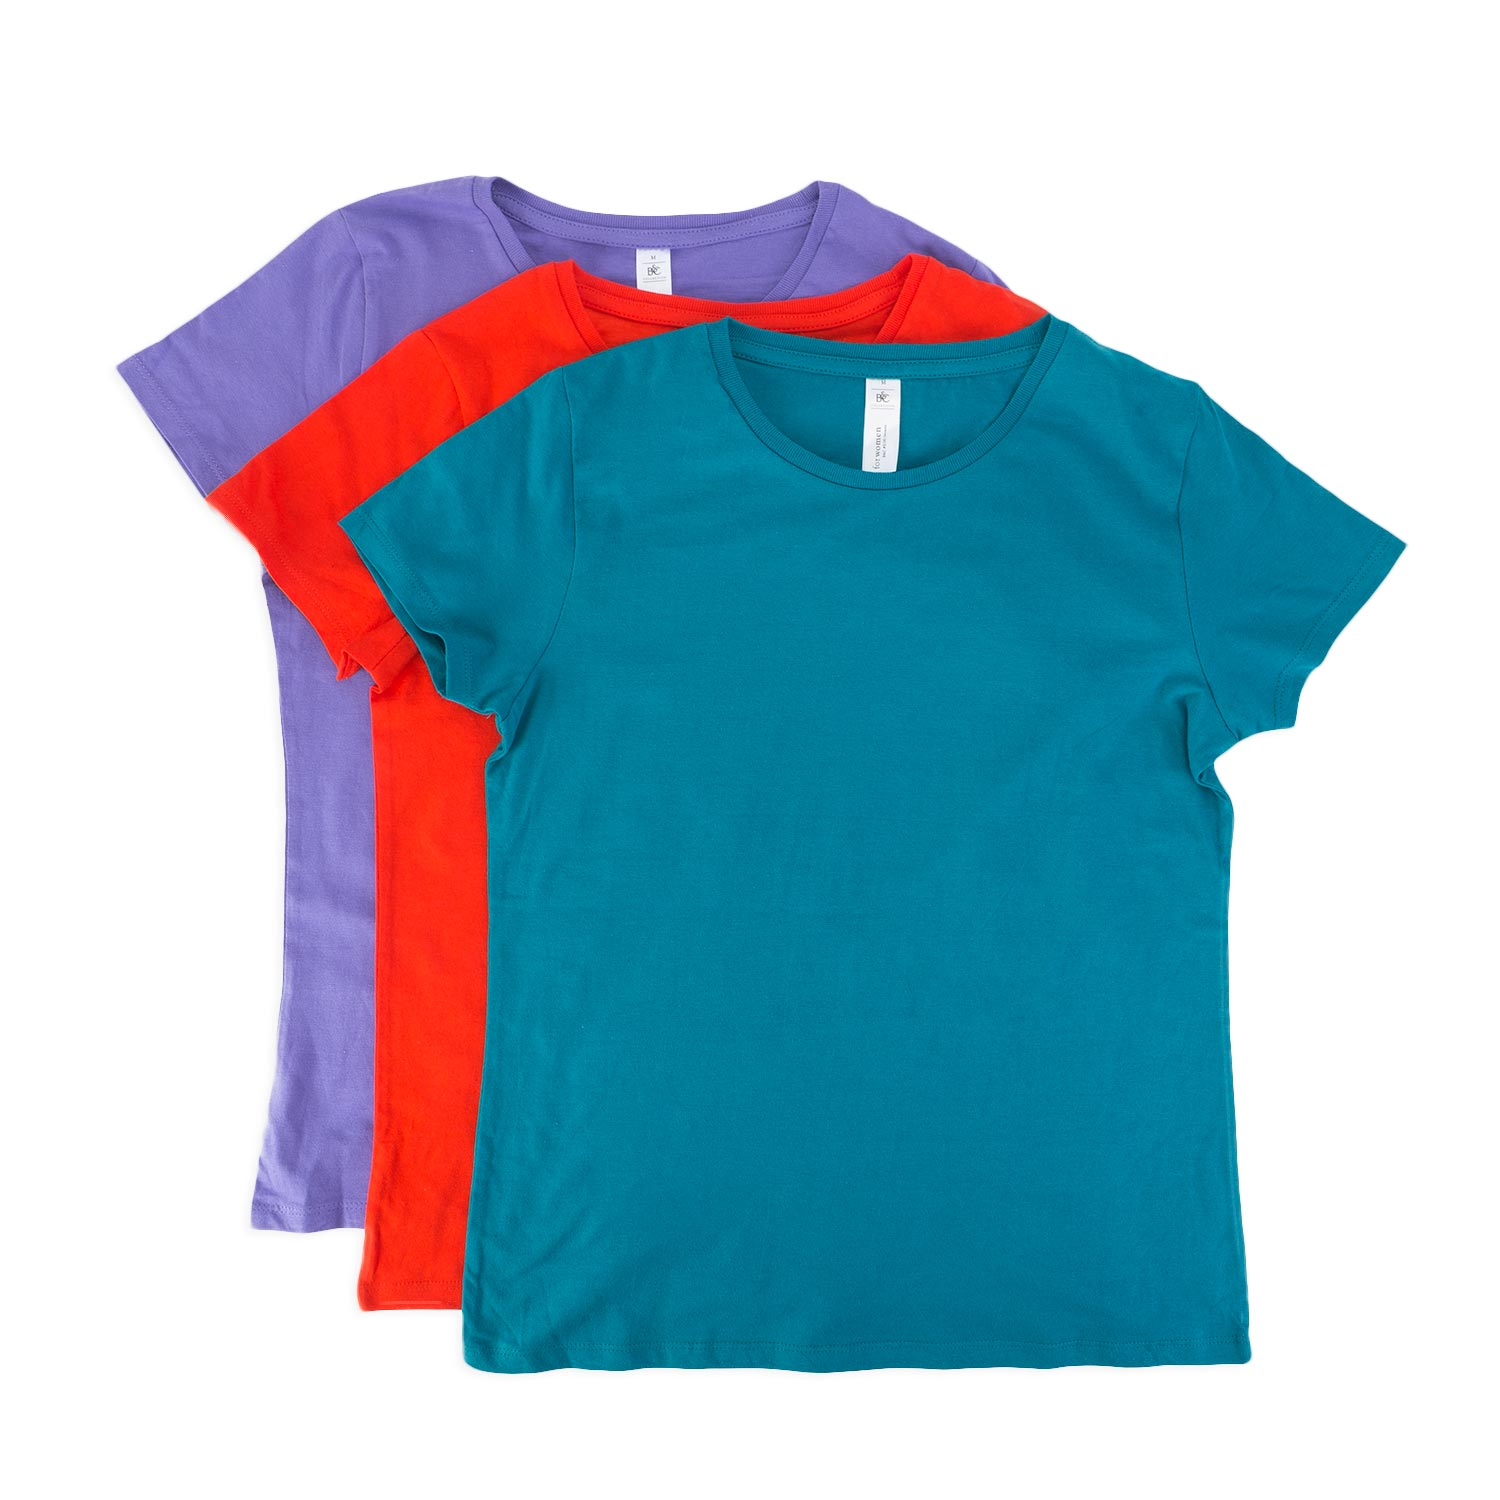 B&C #E190 Ladies' Crew Neck T-Shirts